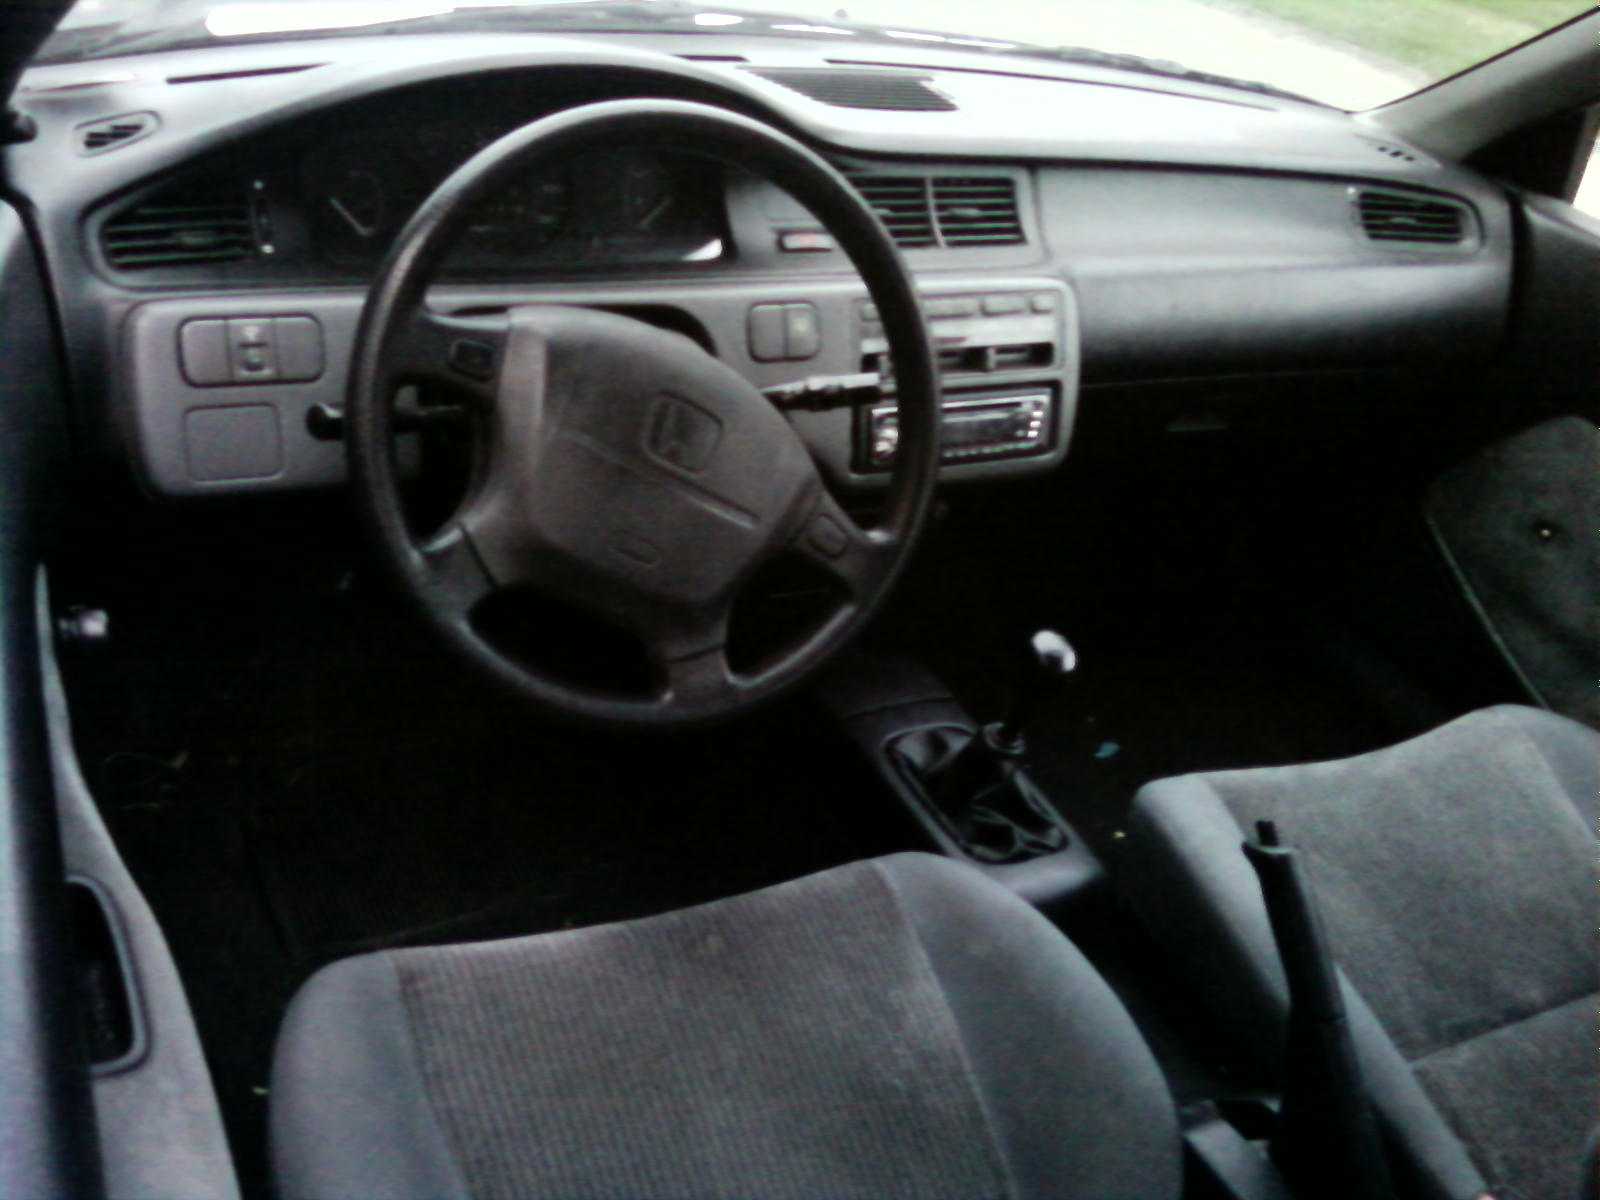 1993 honda civic interior pictures cargurus